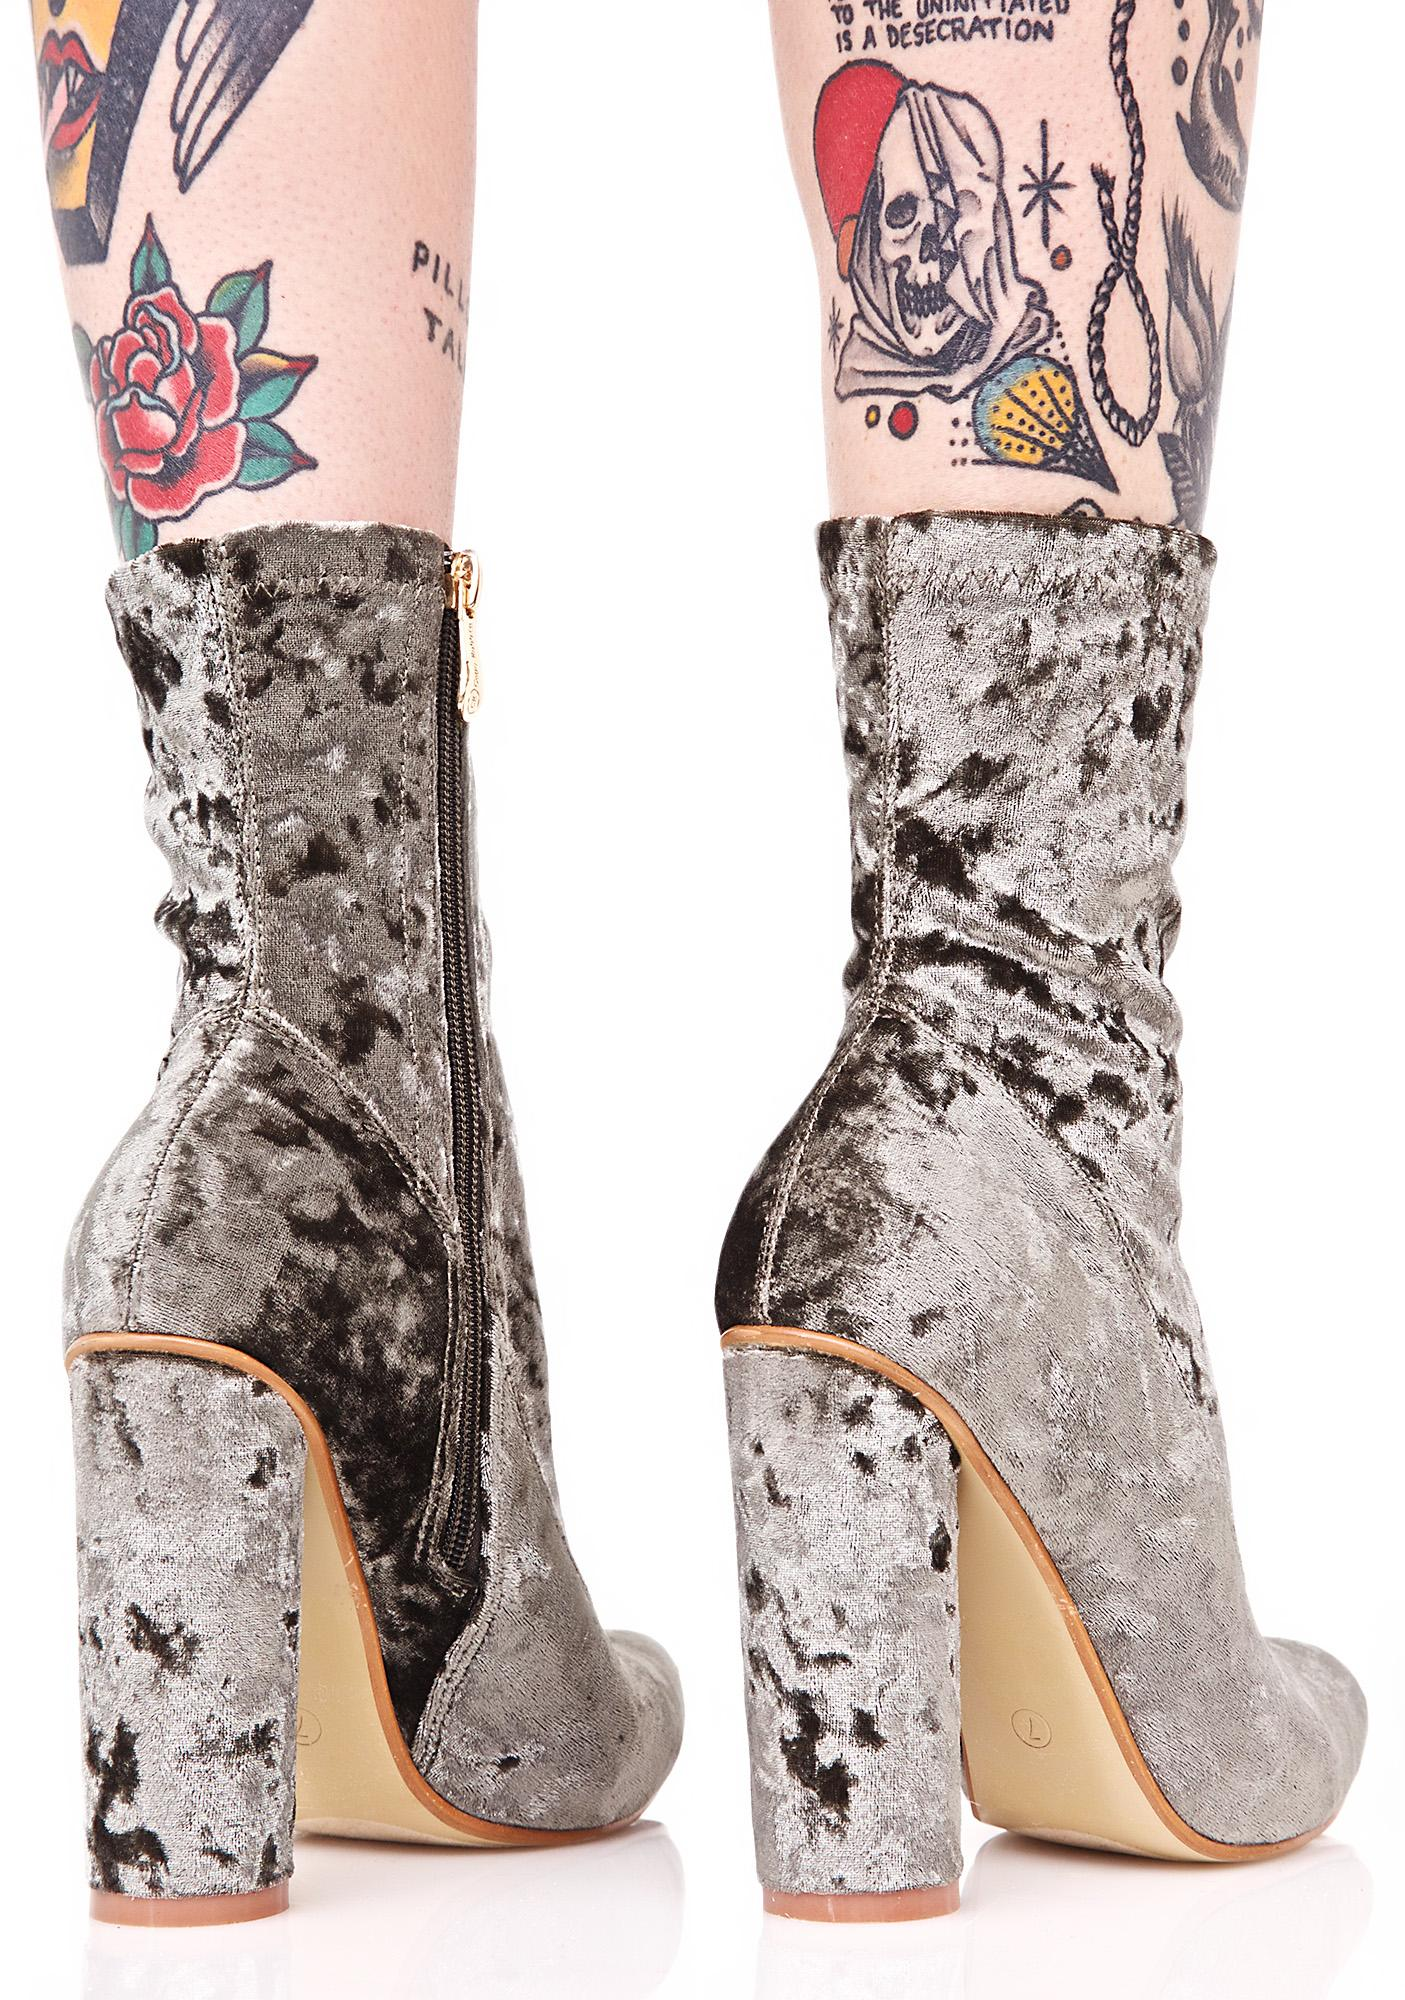 Moondust Planetary Ankle Boots